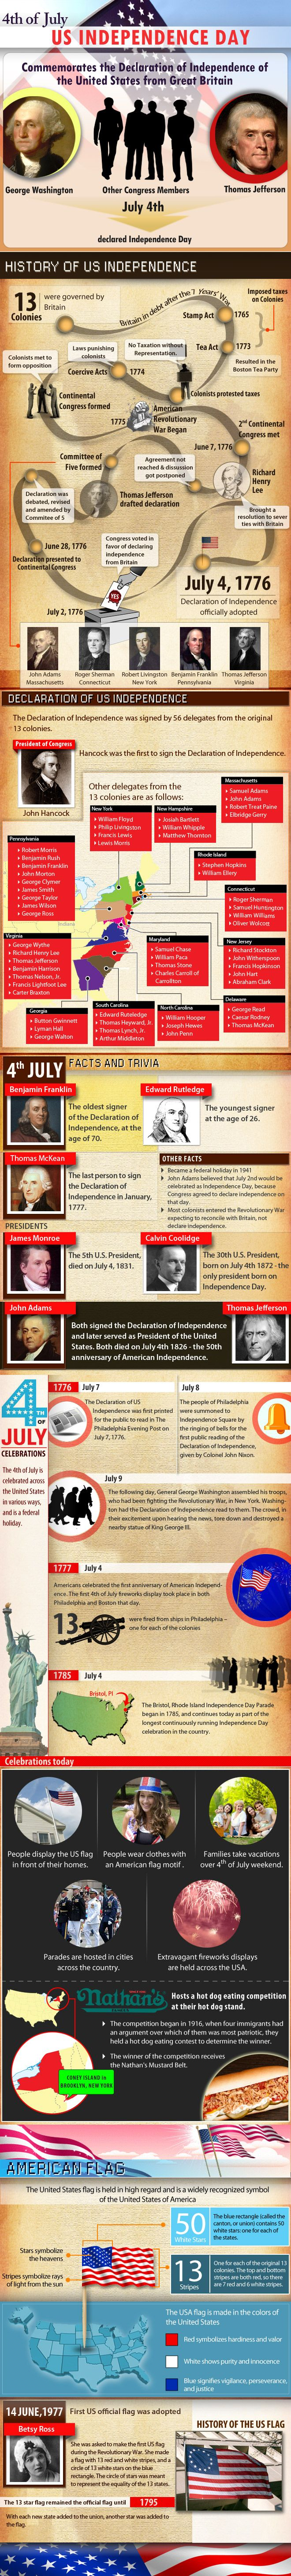 A fun infographics about the 4th of July, Explore the history behind July 4th, flag, celebrations, facts and trivia.